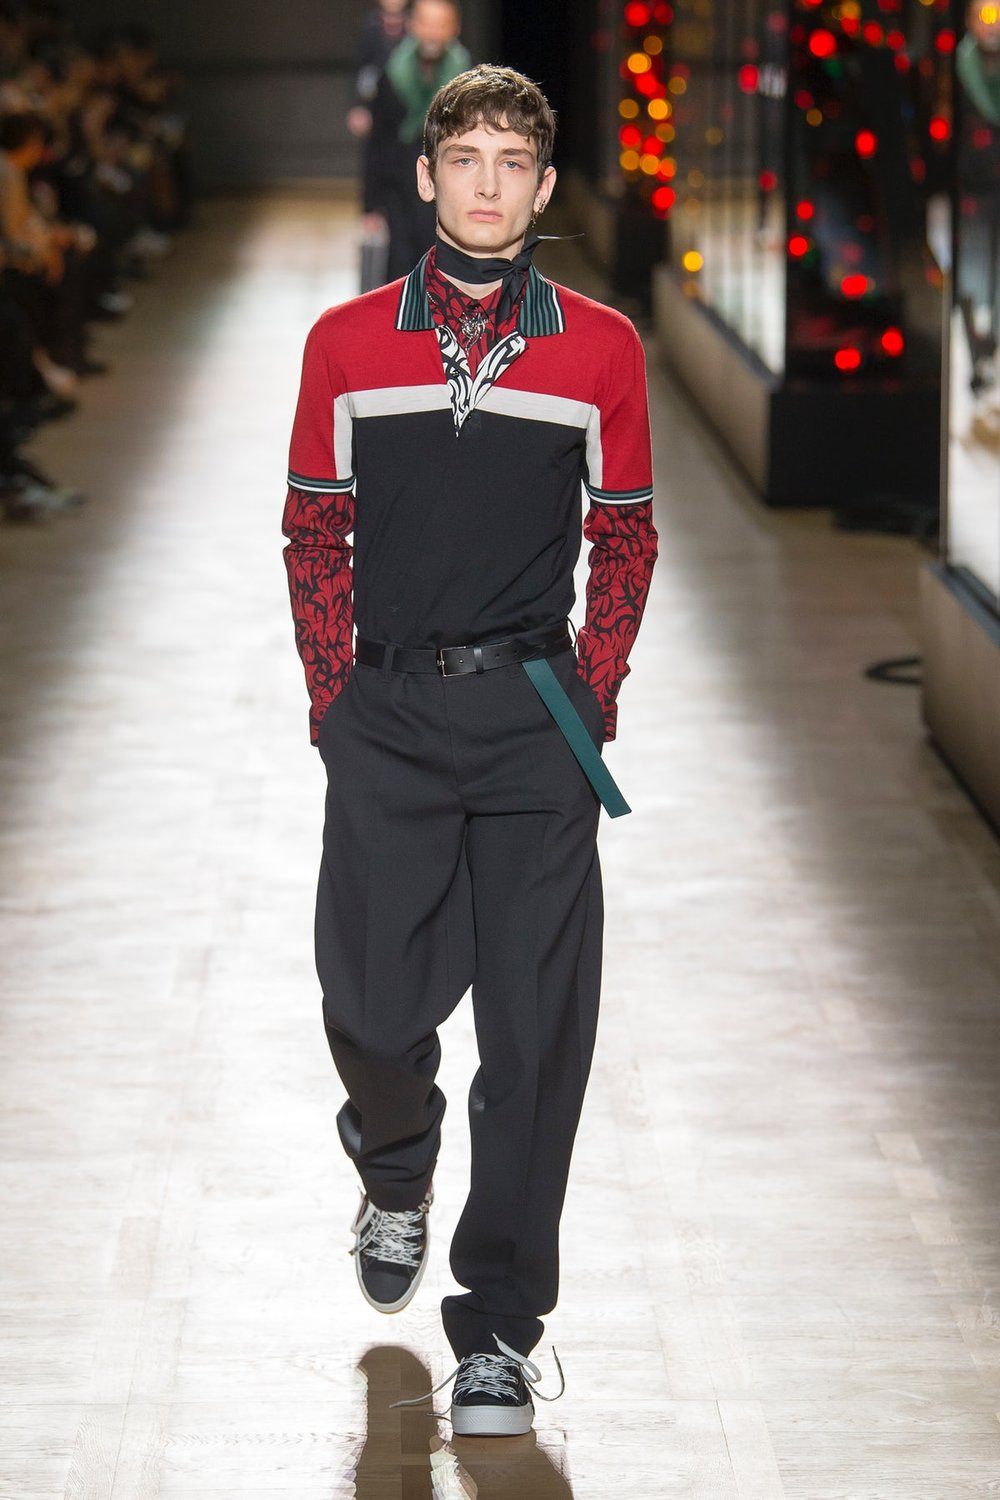 dior_homme_look_13_menswear_autumn_2018.jpeg